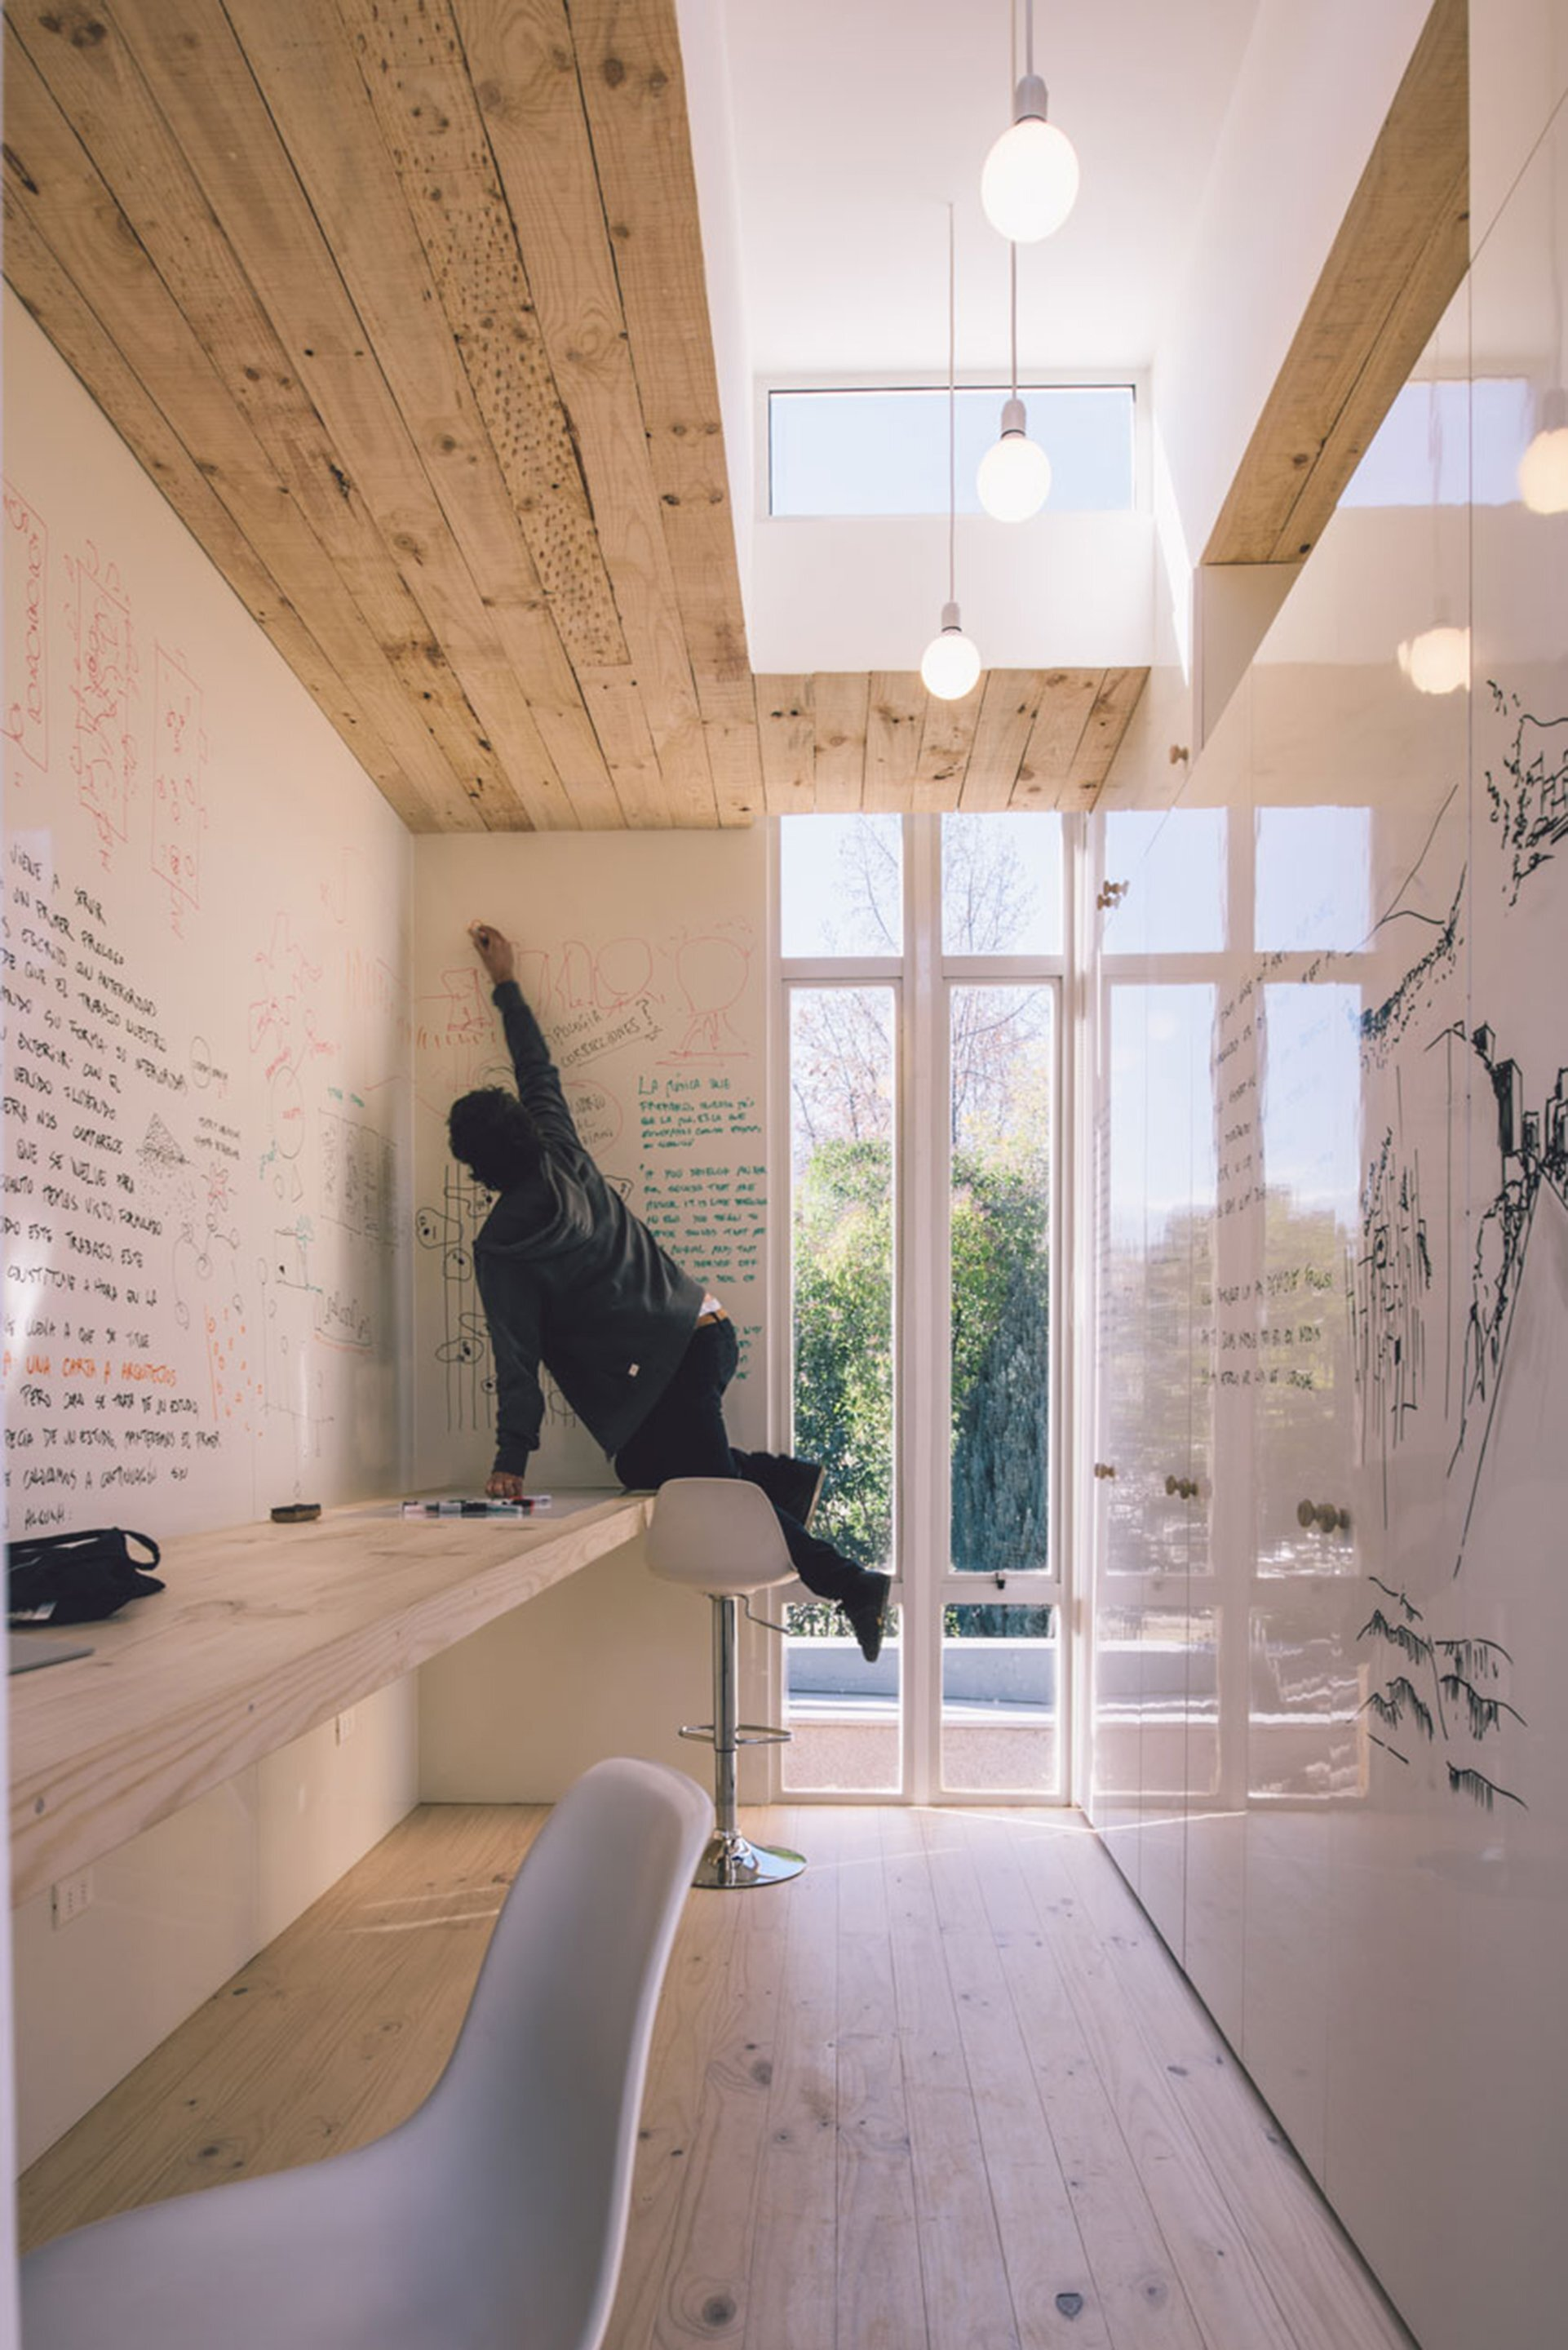 Workshop in the City - Romero Silva Arquitectos - Chile - At Work - Humble Homes